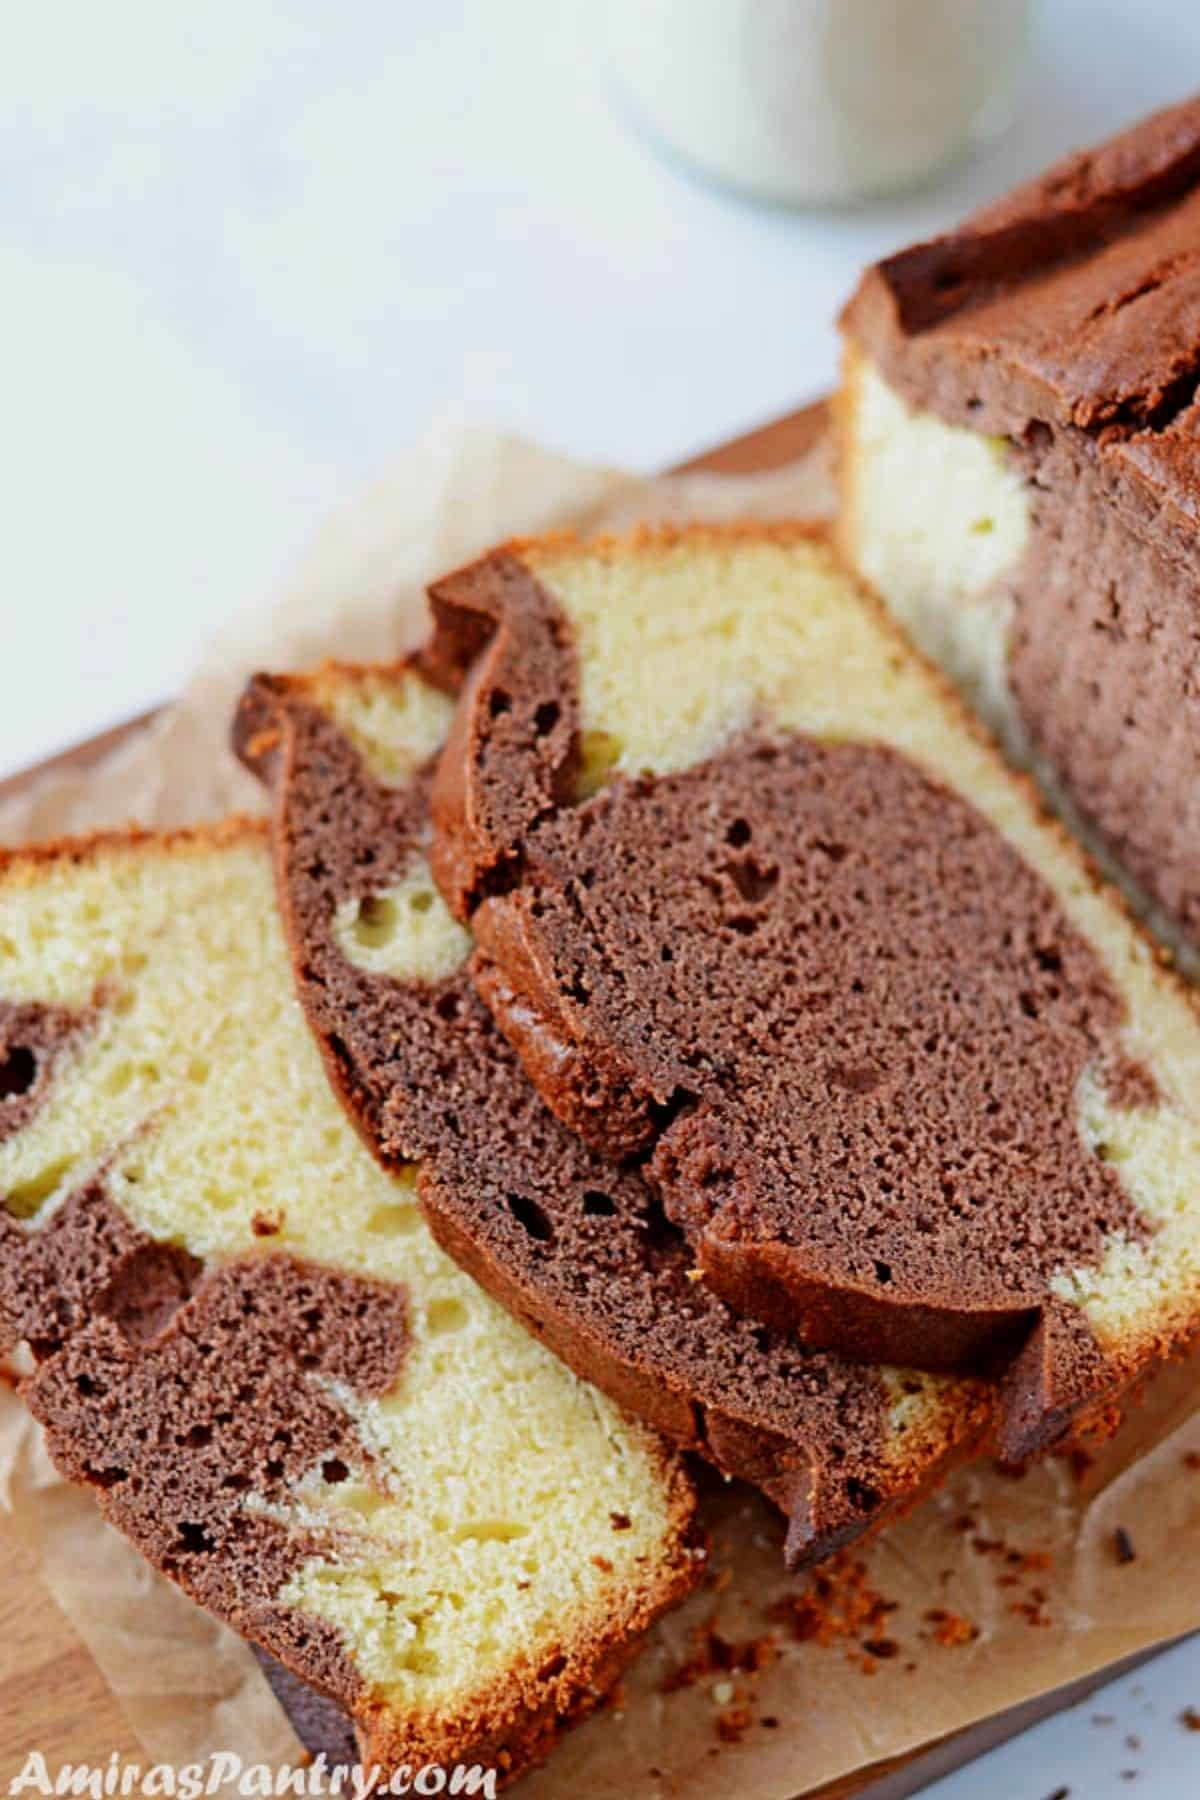 Sliced marble pound cake on a wooden board with a bottle of milk in the back.